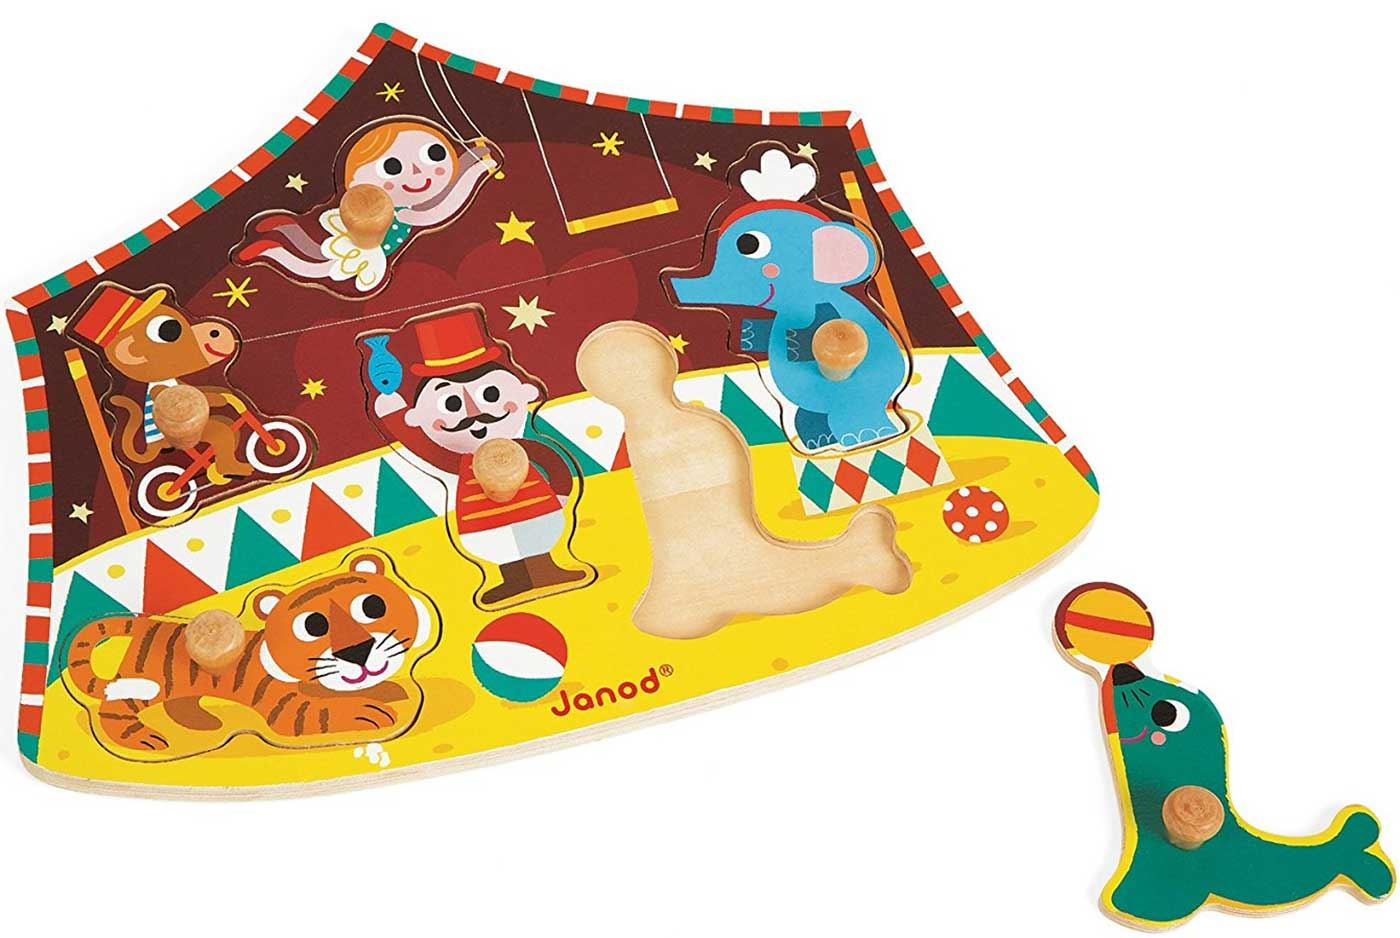 Janod Circus Puzzle Wooden Peg Activity Toy